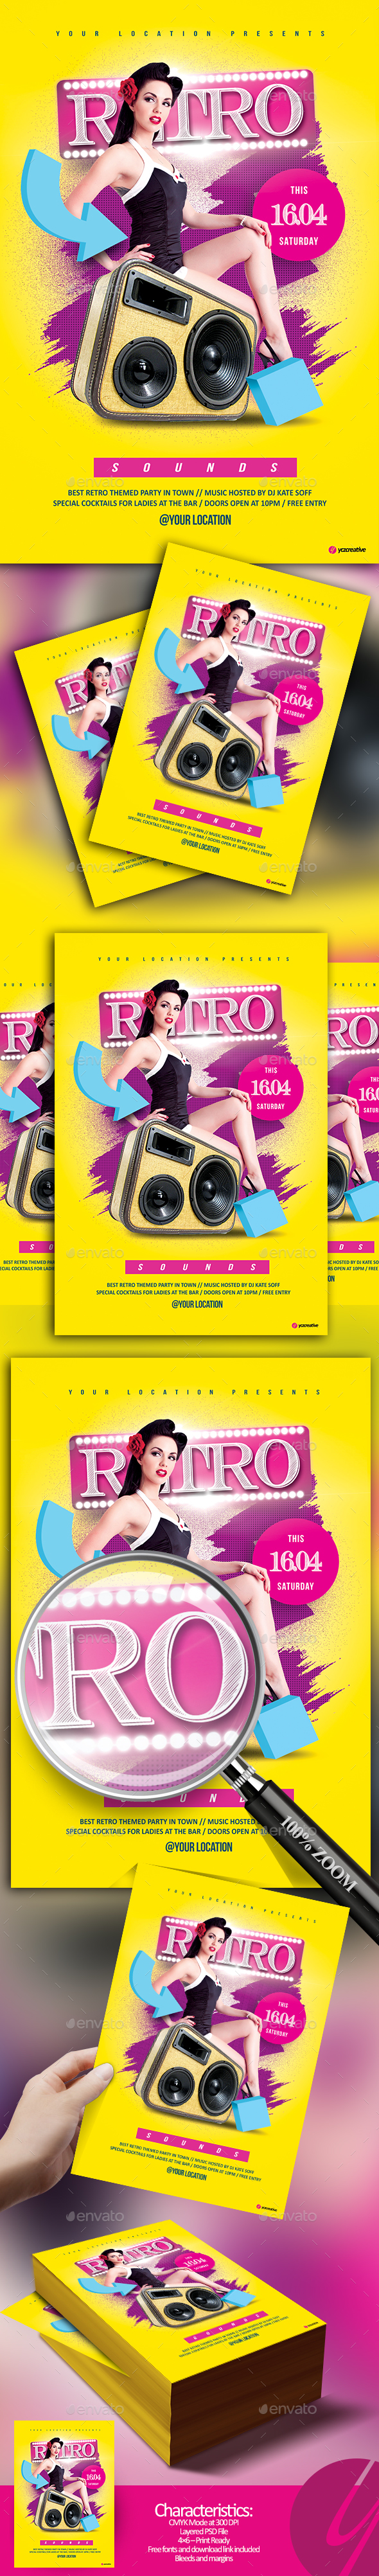 Retro Sounds Flyer - Clubs & Parties Events